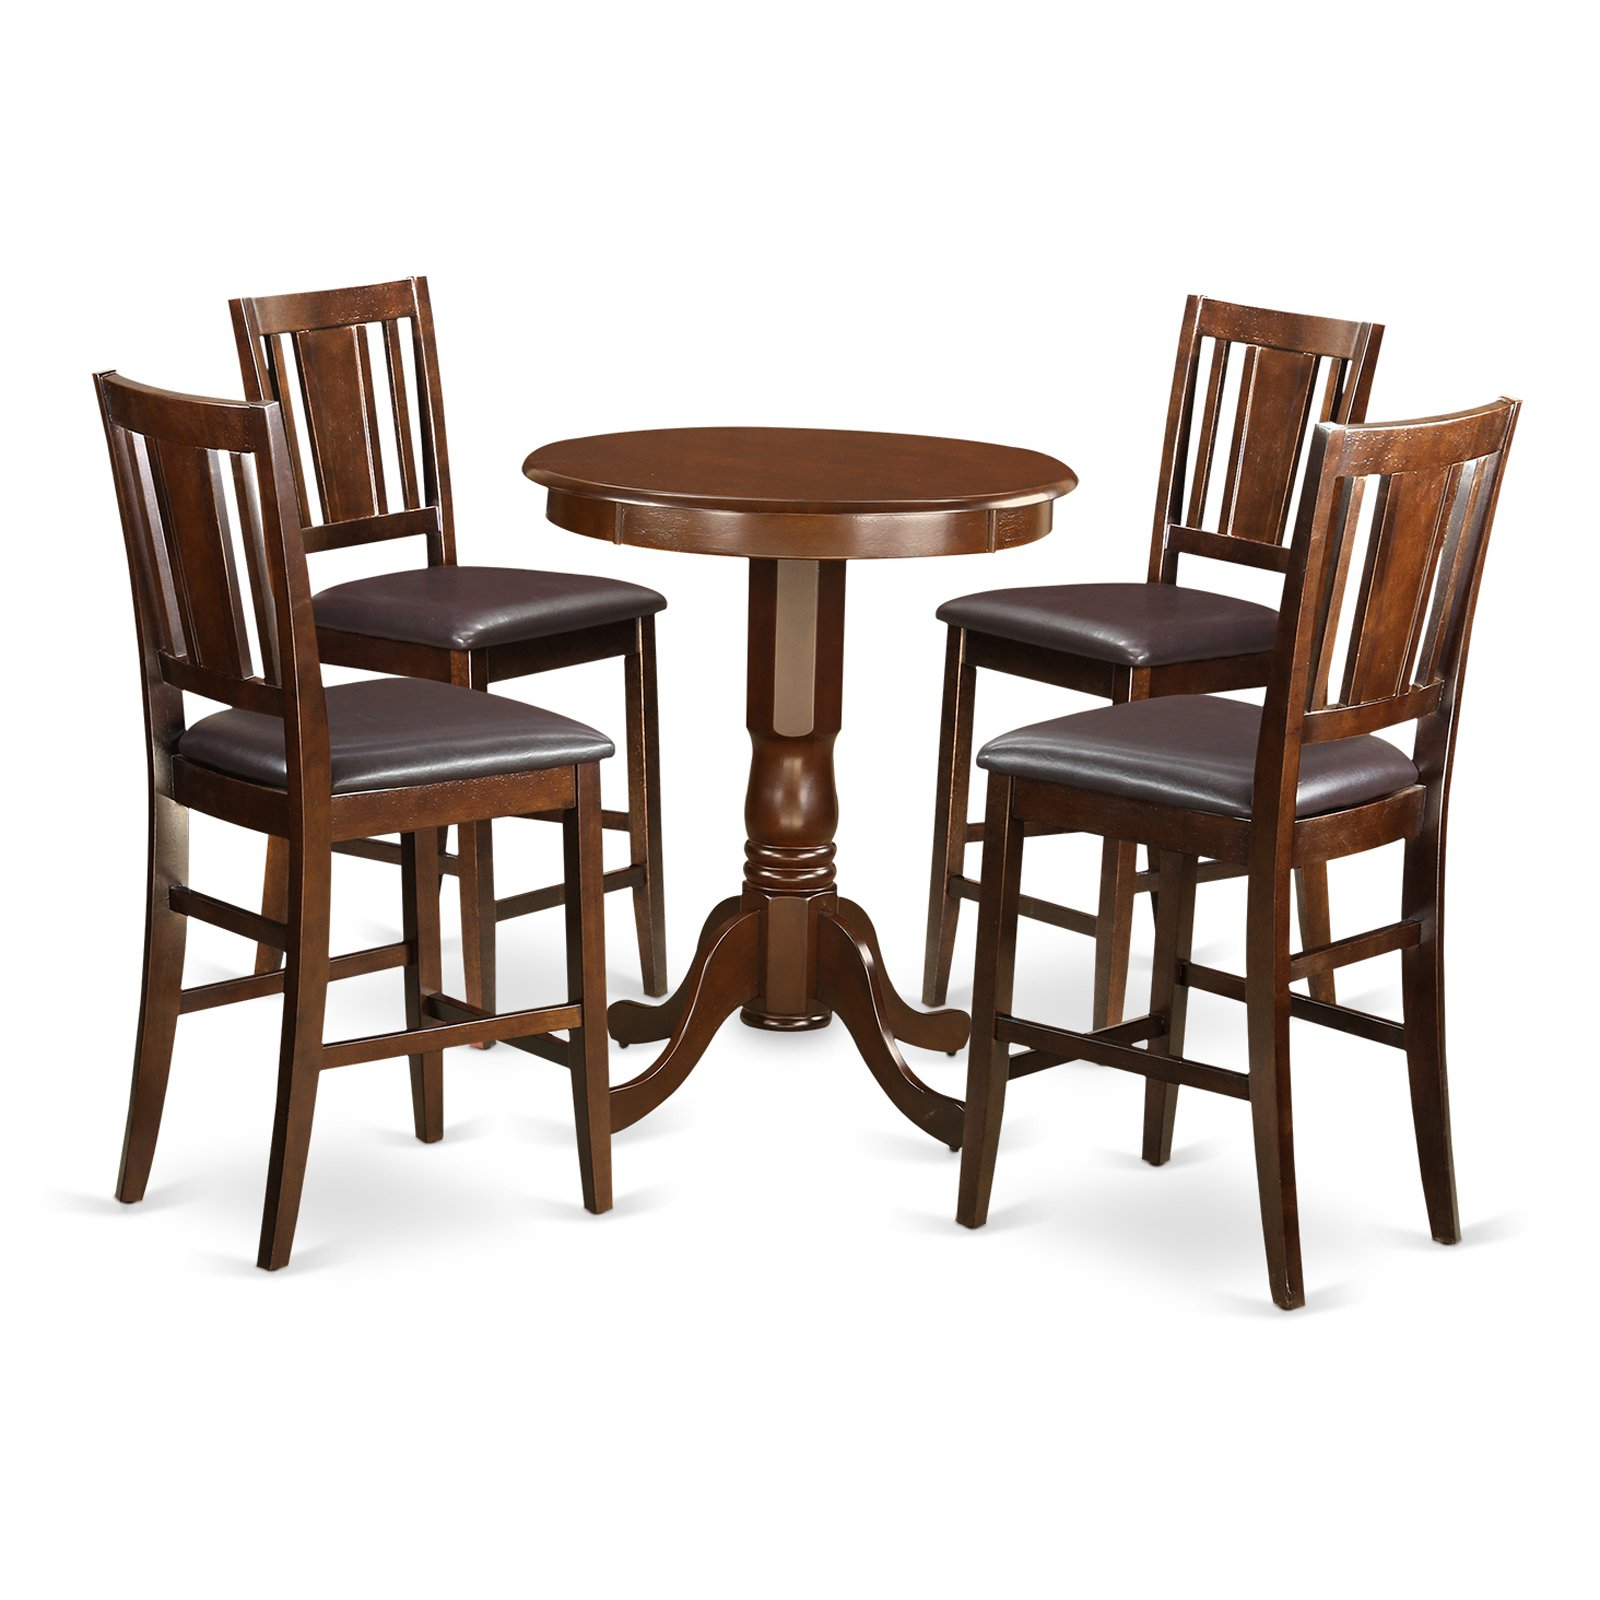 East West Furniture Eden 5 Piece Scotch Art Dining Table Set